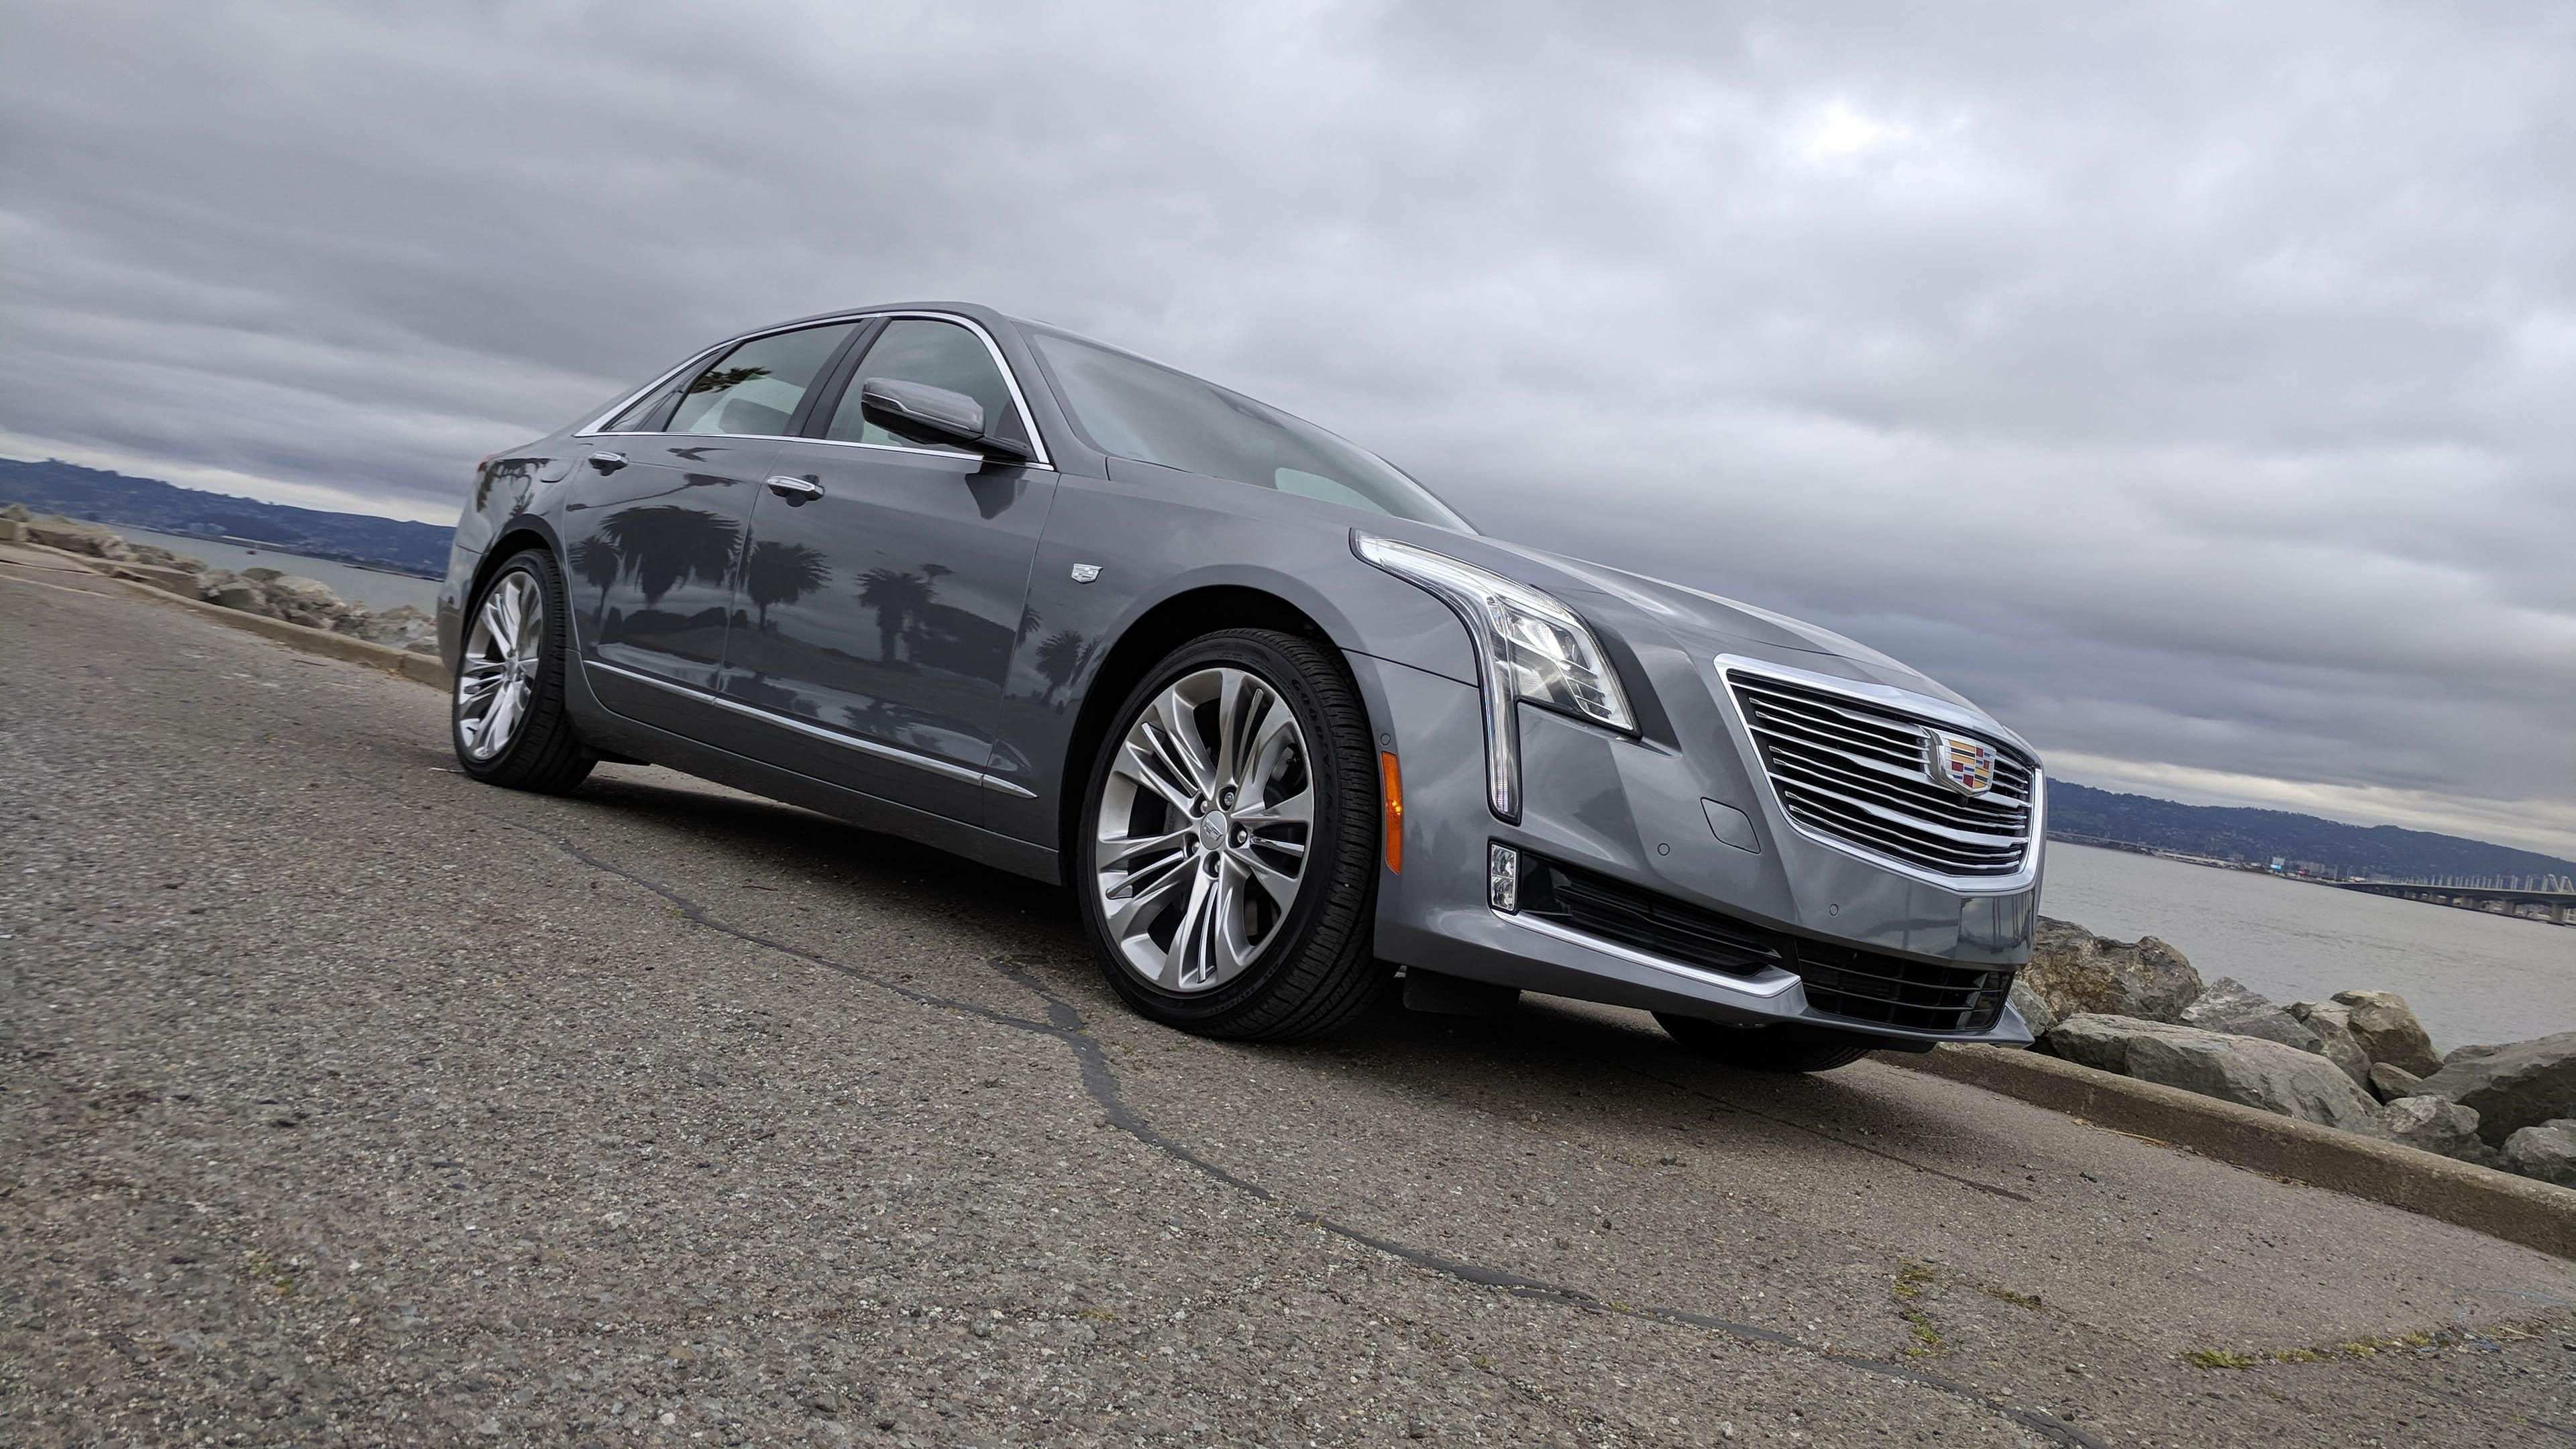 44 Best Review Cadillac Flagship 2019 Release Date Configurations with Cadillac Flagship 2019 Release Date